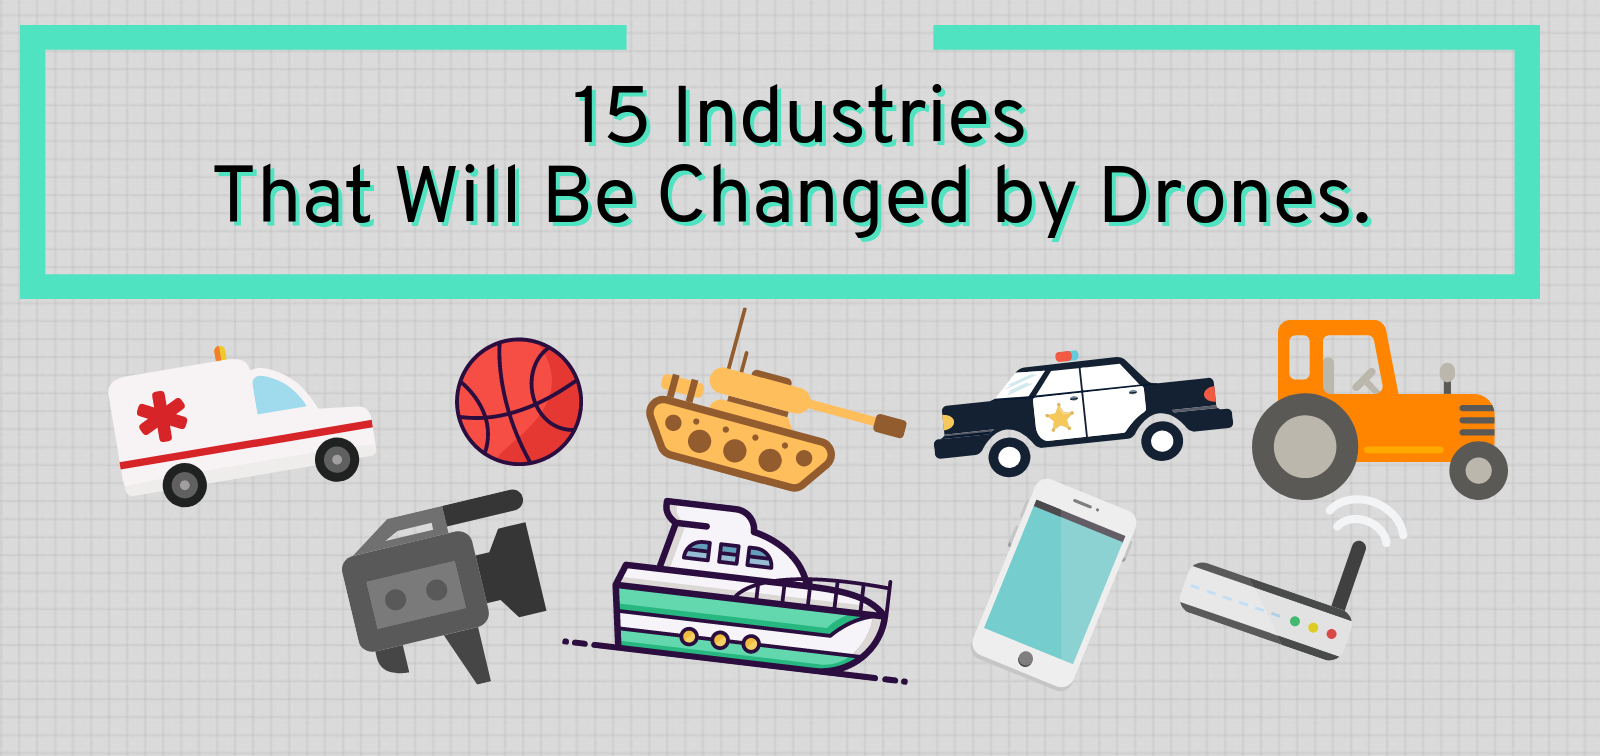 15 Industries That Will Be Changed by Drones